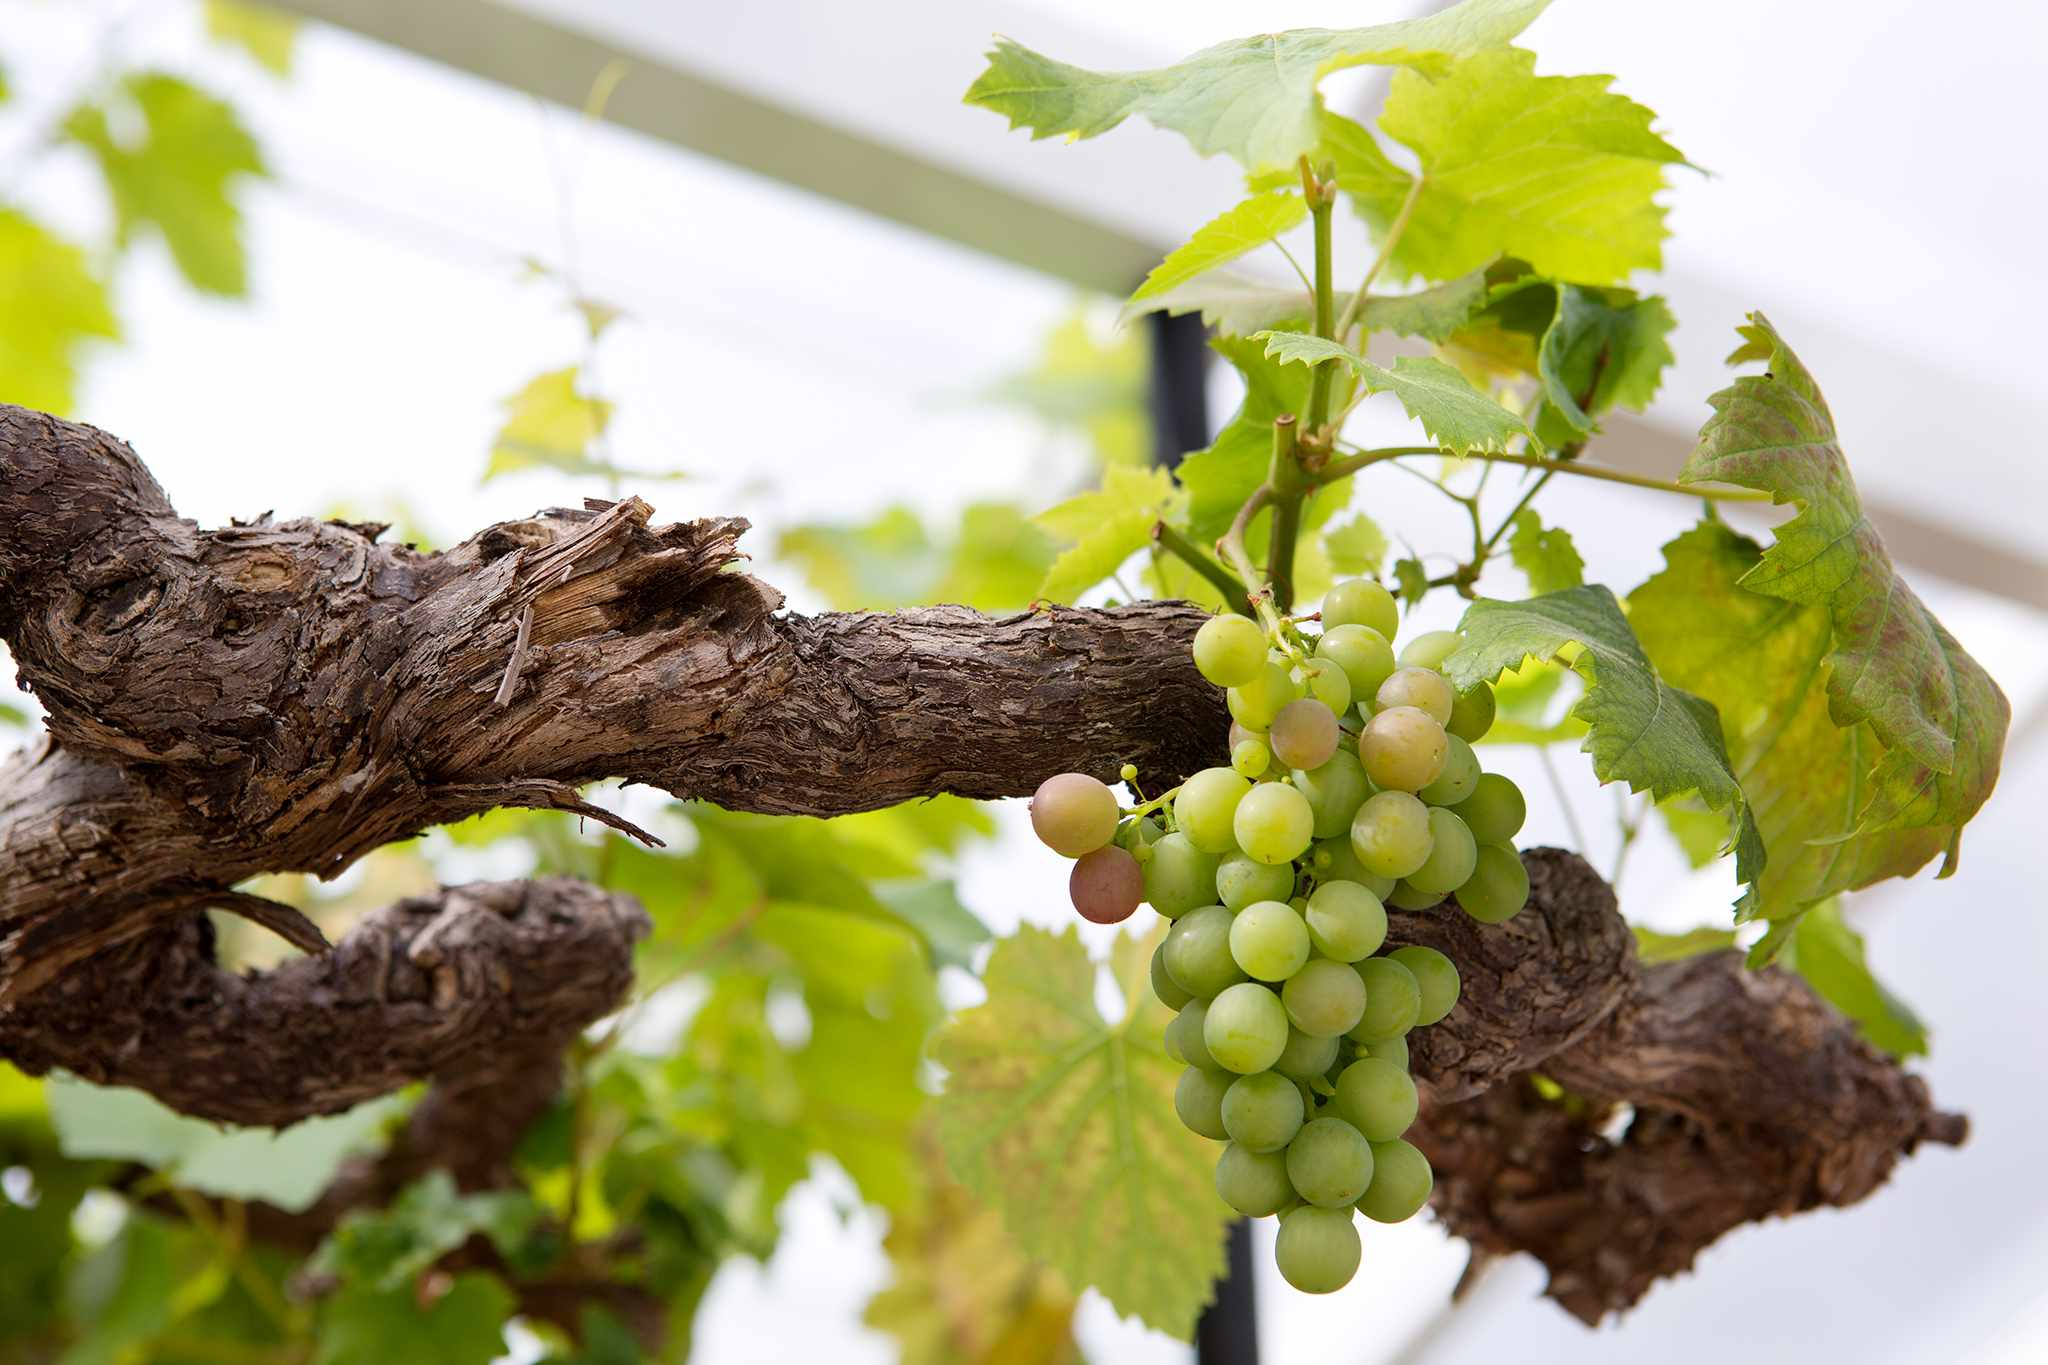 Grapes in a greenhouse